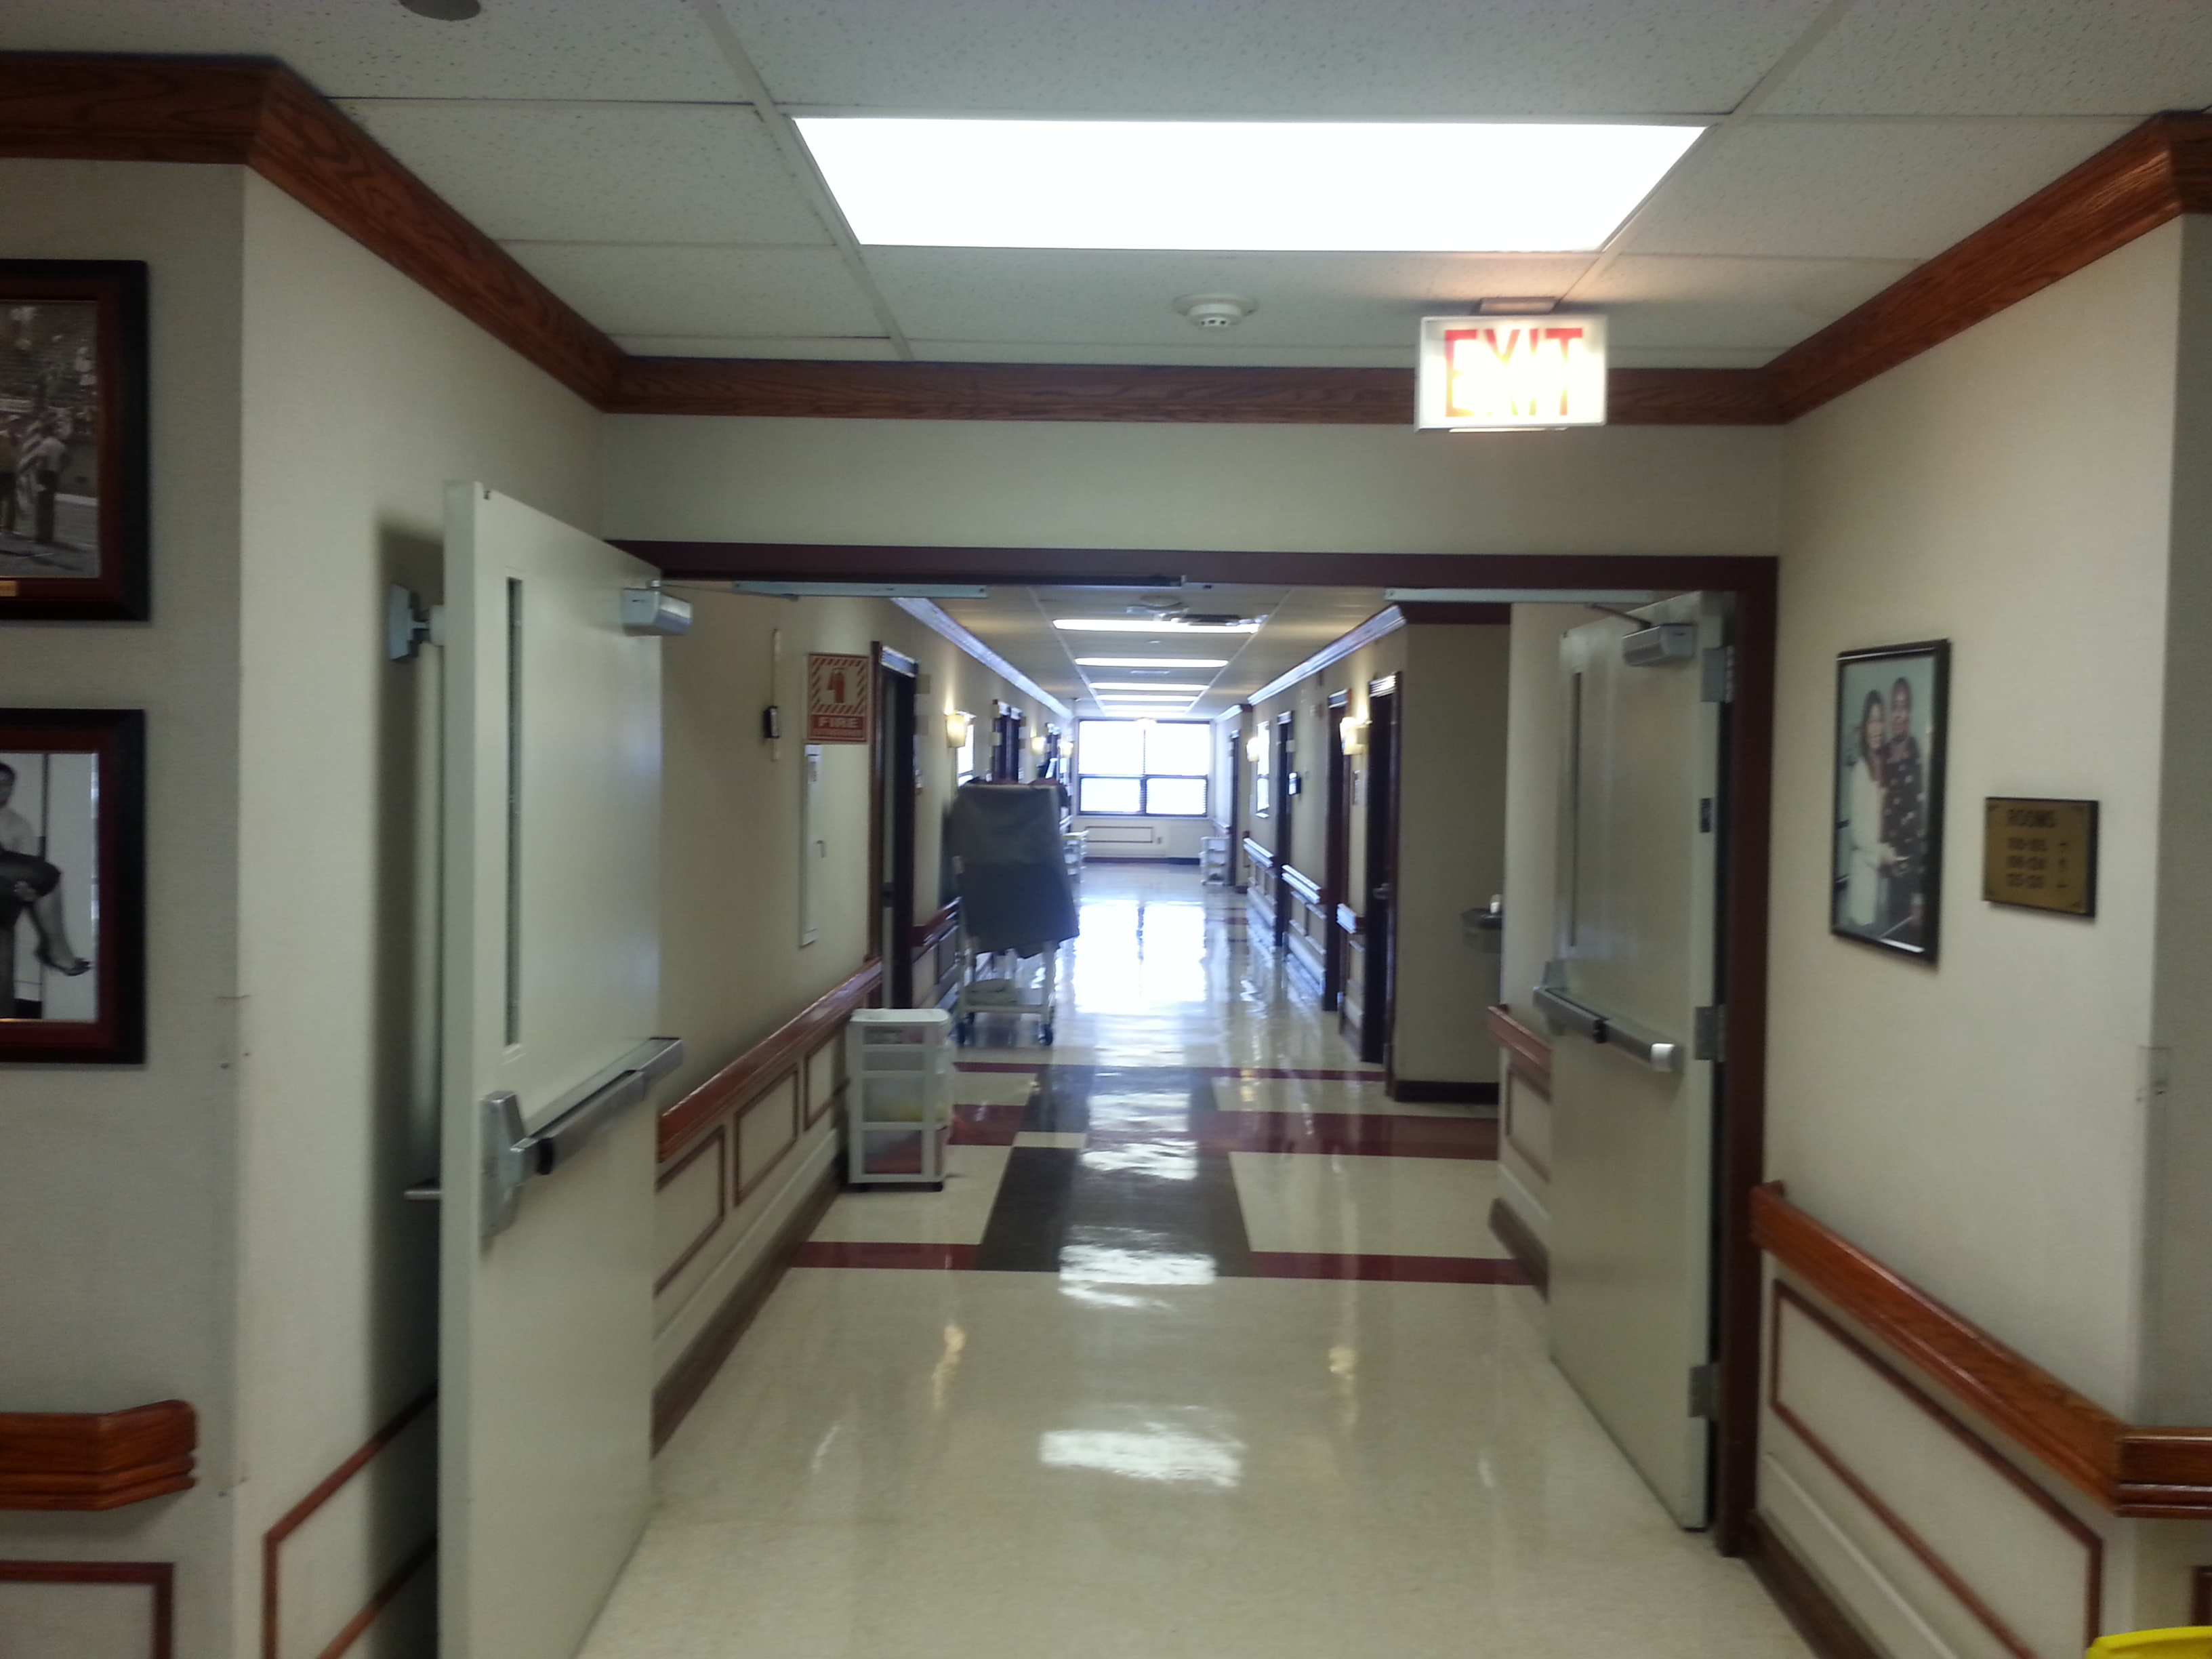 Hospital Fire Doors : What are fire doors fox valley safety